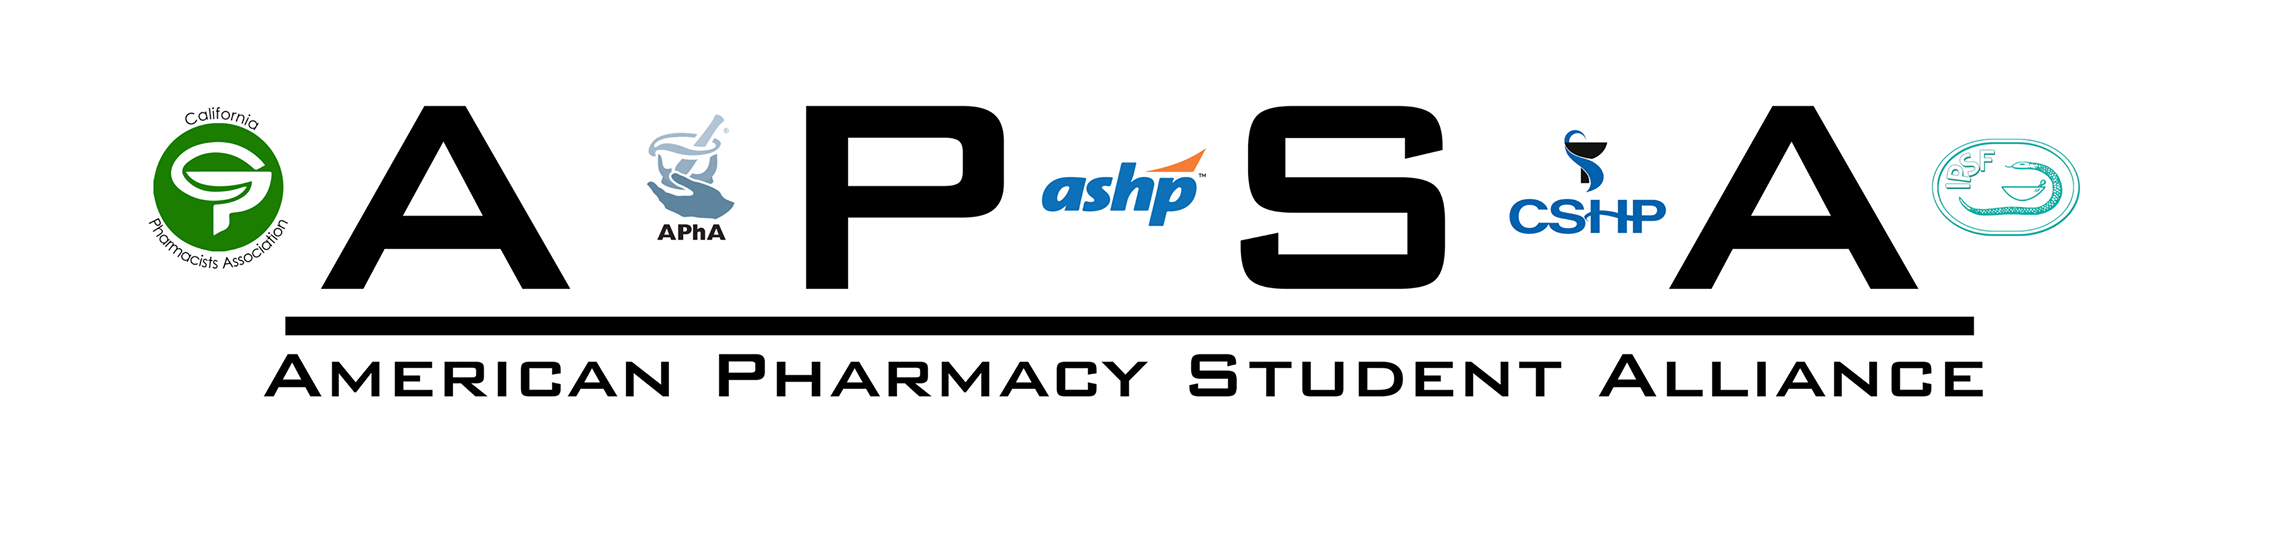 apsa usc assp the american pharmacy student alliance apsa is a professional student alliance between five independent professional organizations apha ashp cpha